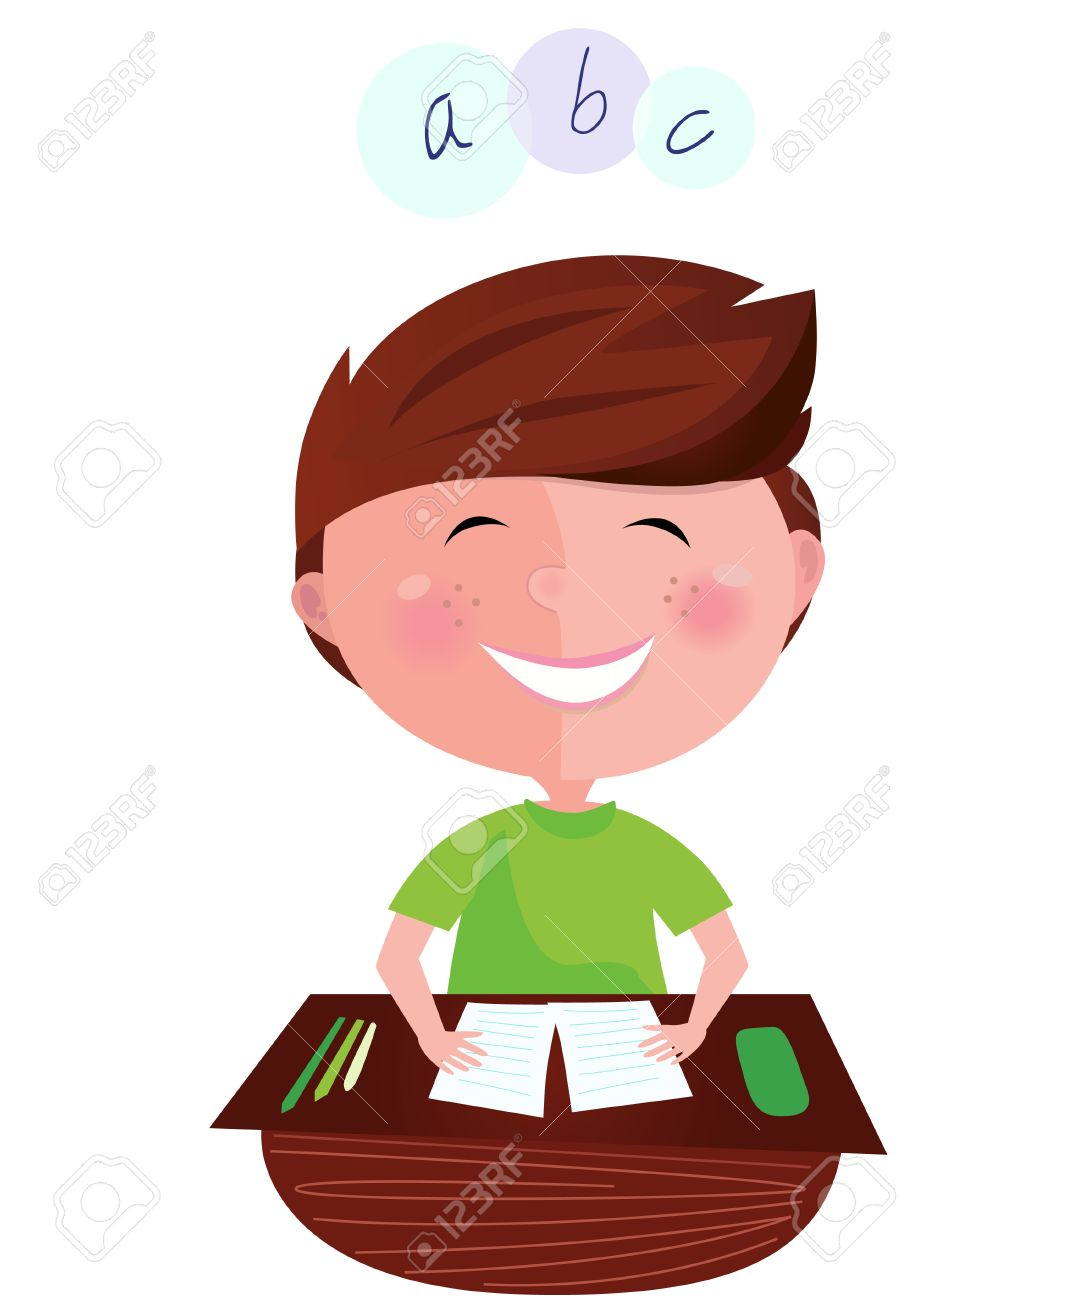 Back to school: Happy smiling learning boy on english lesson. Cartoon  illustration of boy learning the letters. Stock Vector - 7127941